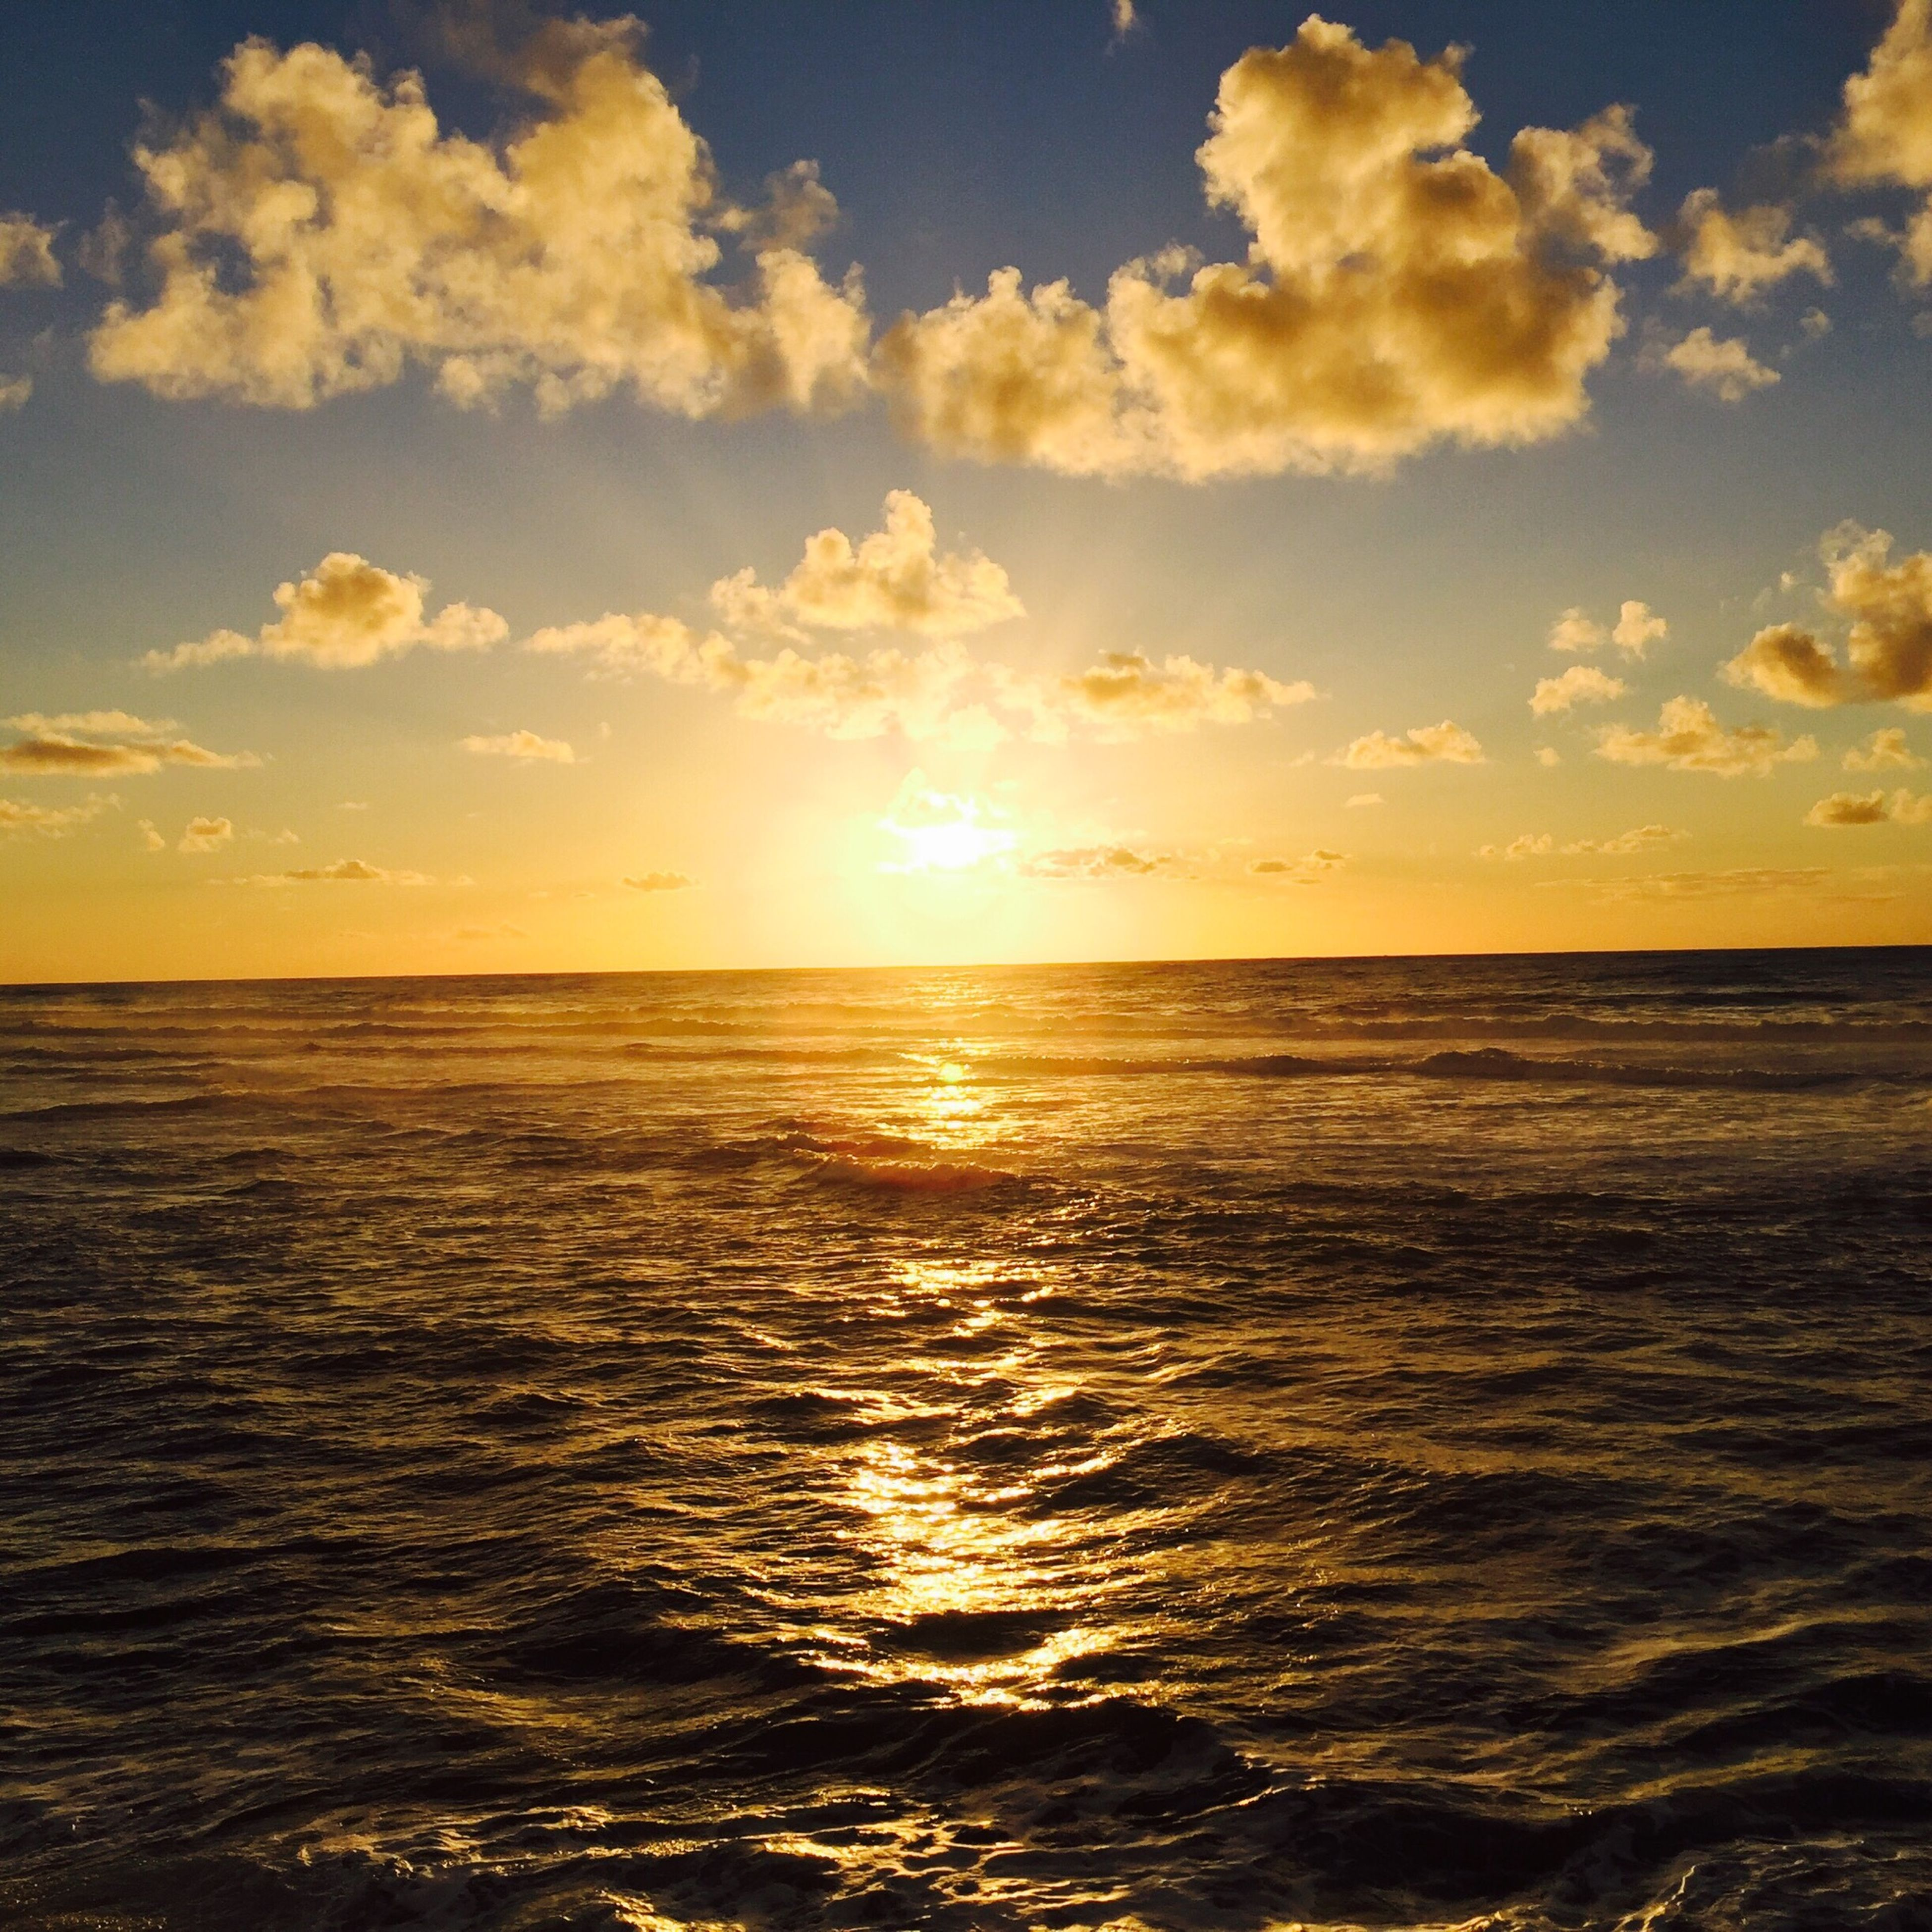 sea, water, sunset, horizon over water, scenics, tranquil scene, beauty in nature, tranquility, waterfront, sky, sun, idyllic, nature, rippled, reflection, seascape, sunlight, orange color, cloud - sky, cloud